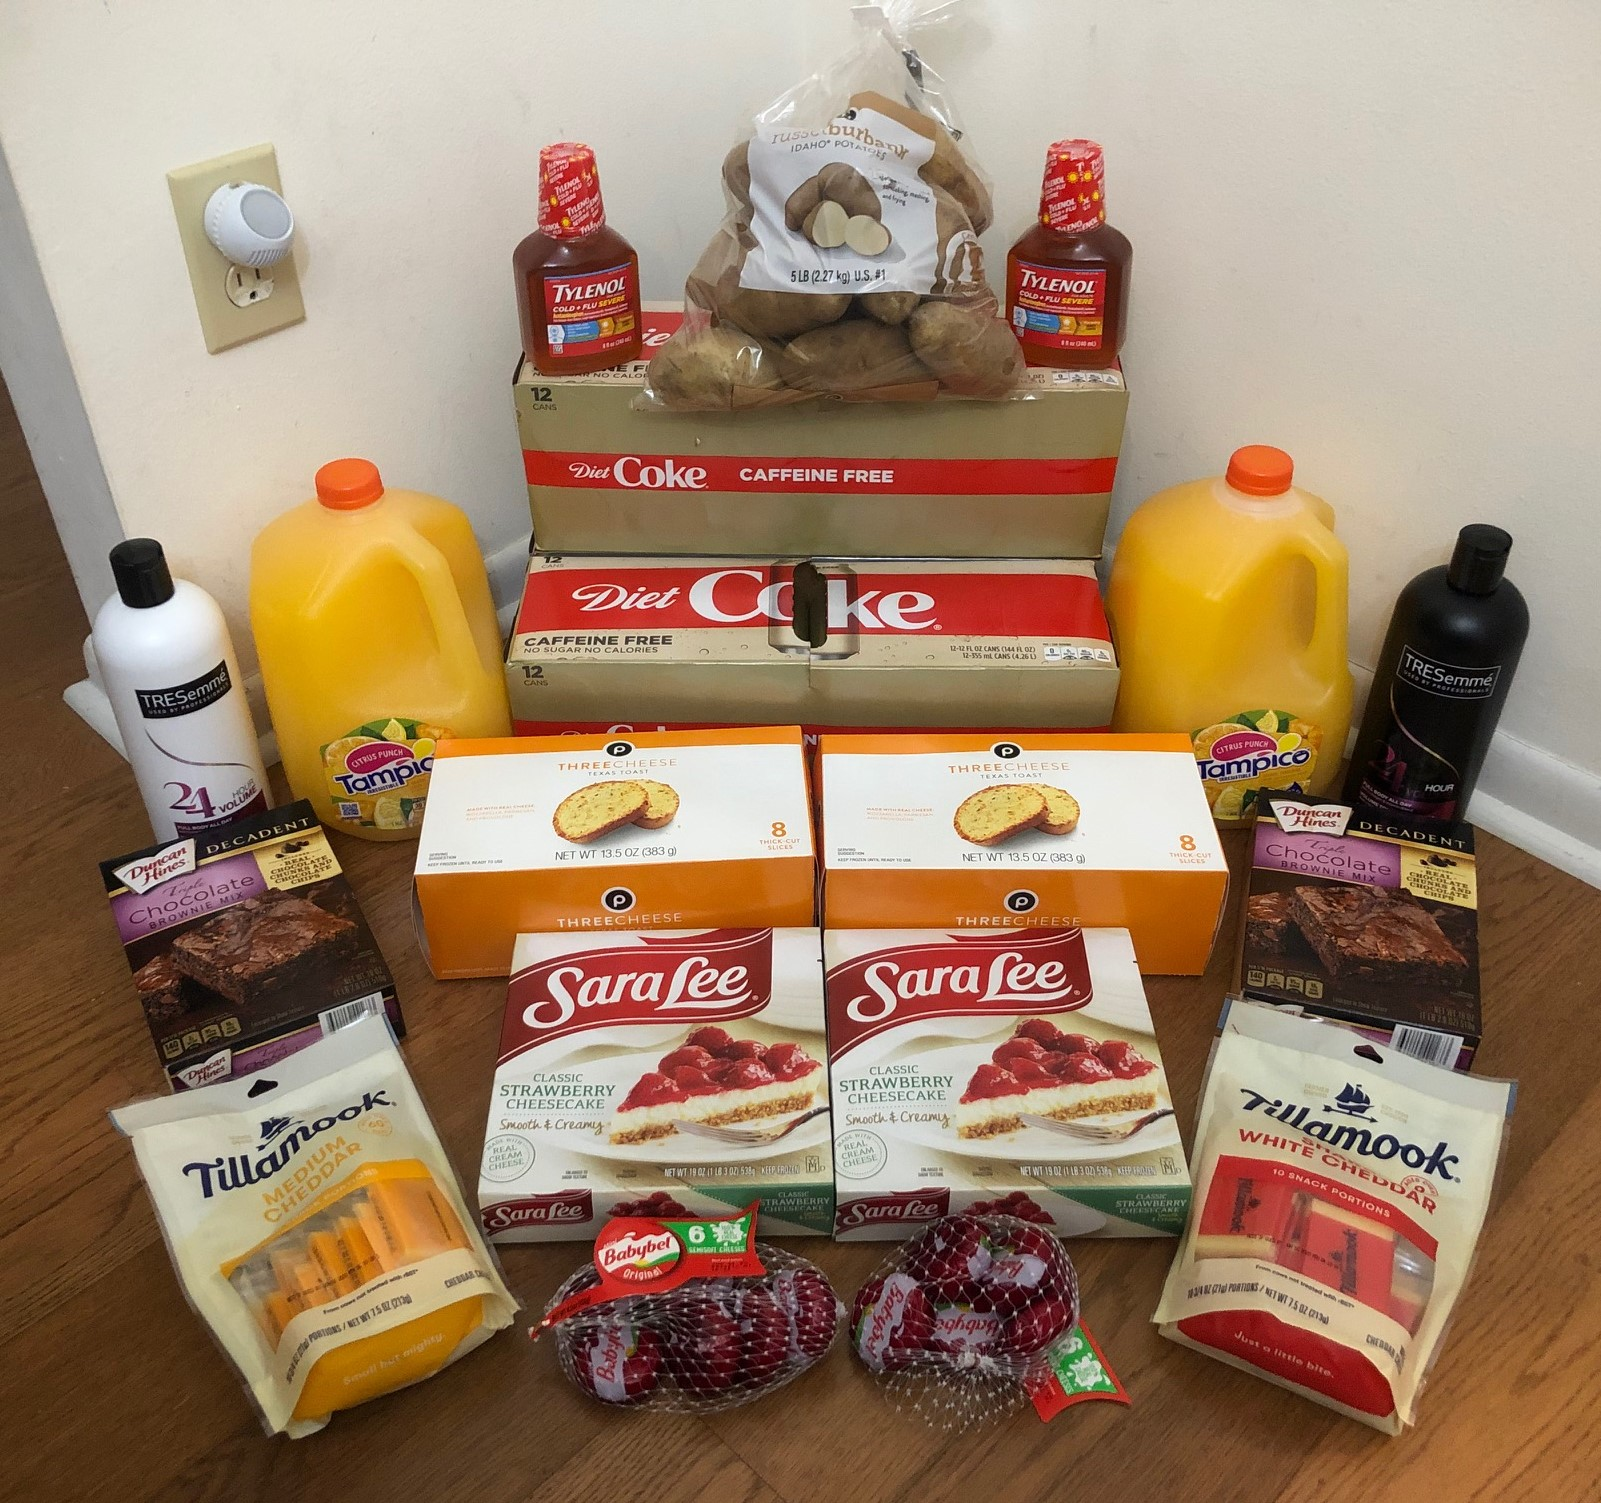 My 2/5 Publix Trip  $93.14 for $33.65 or 64% Off